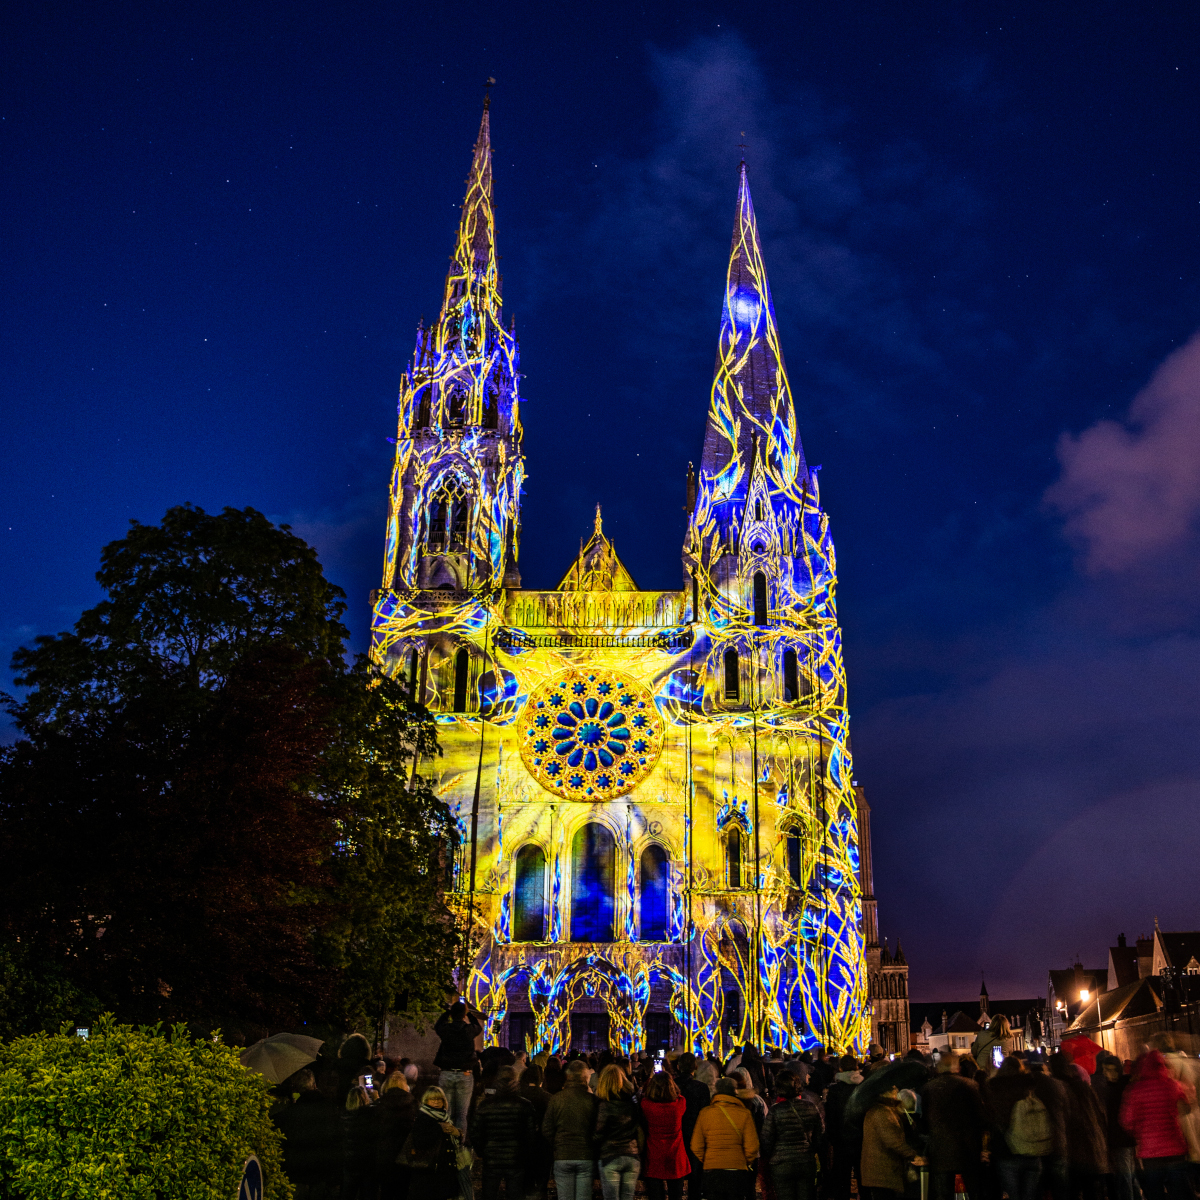 chartres-en-lumieres-cathedrale-portail-royal-01